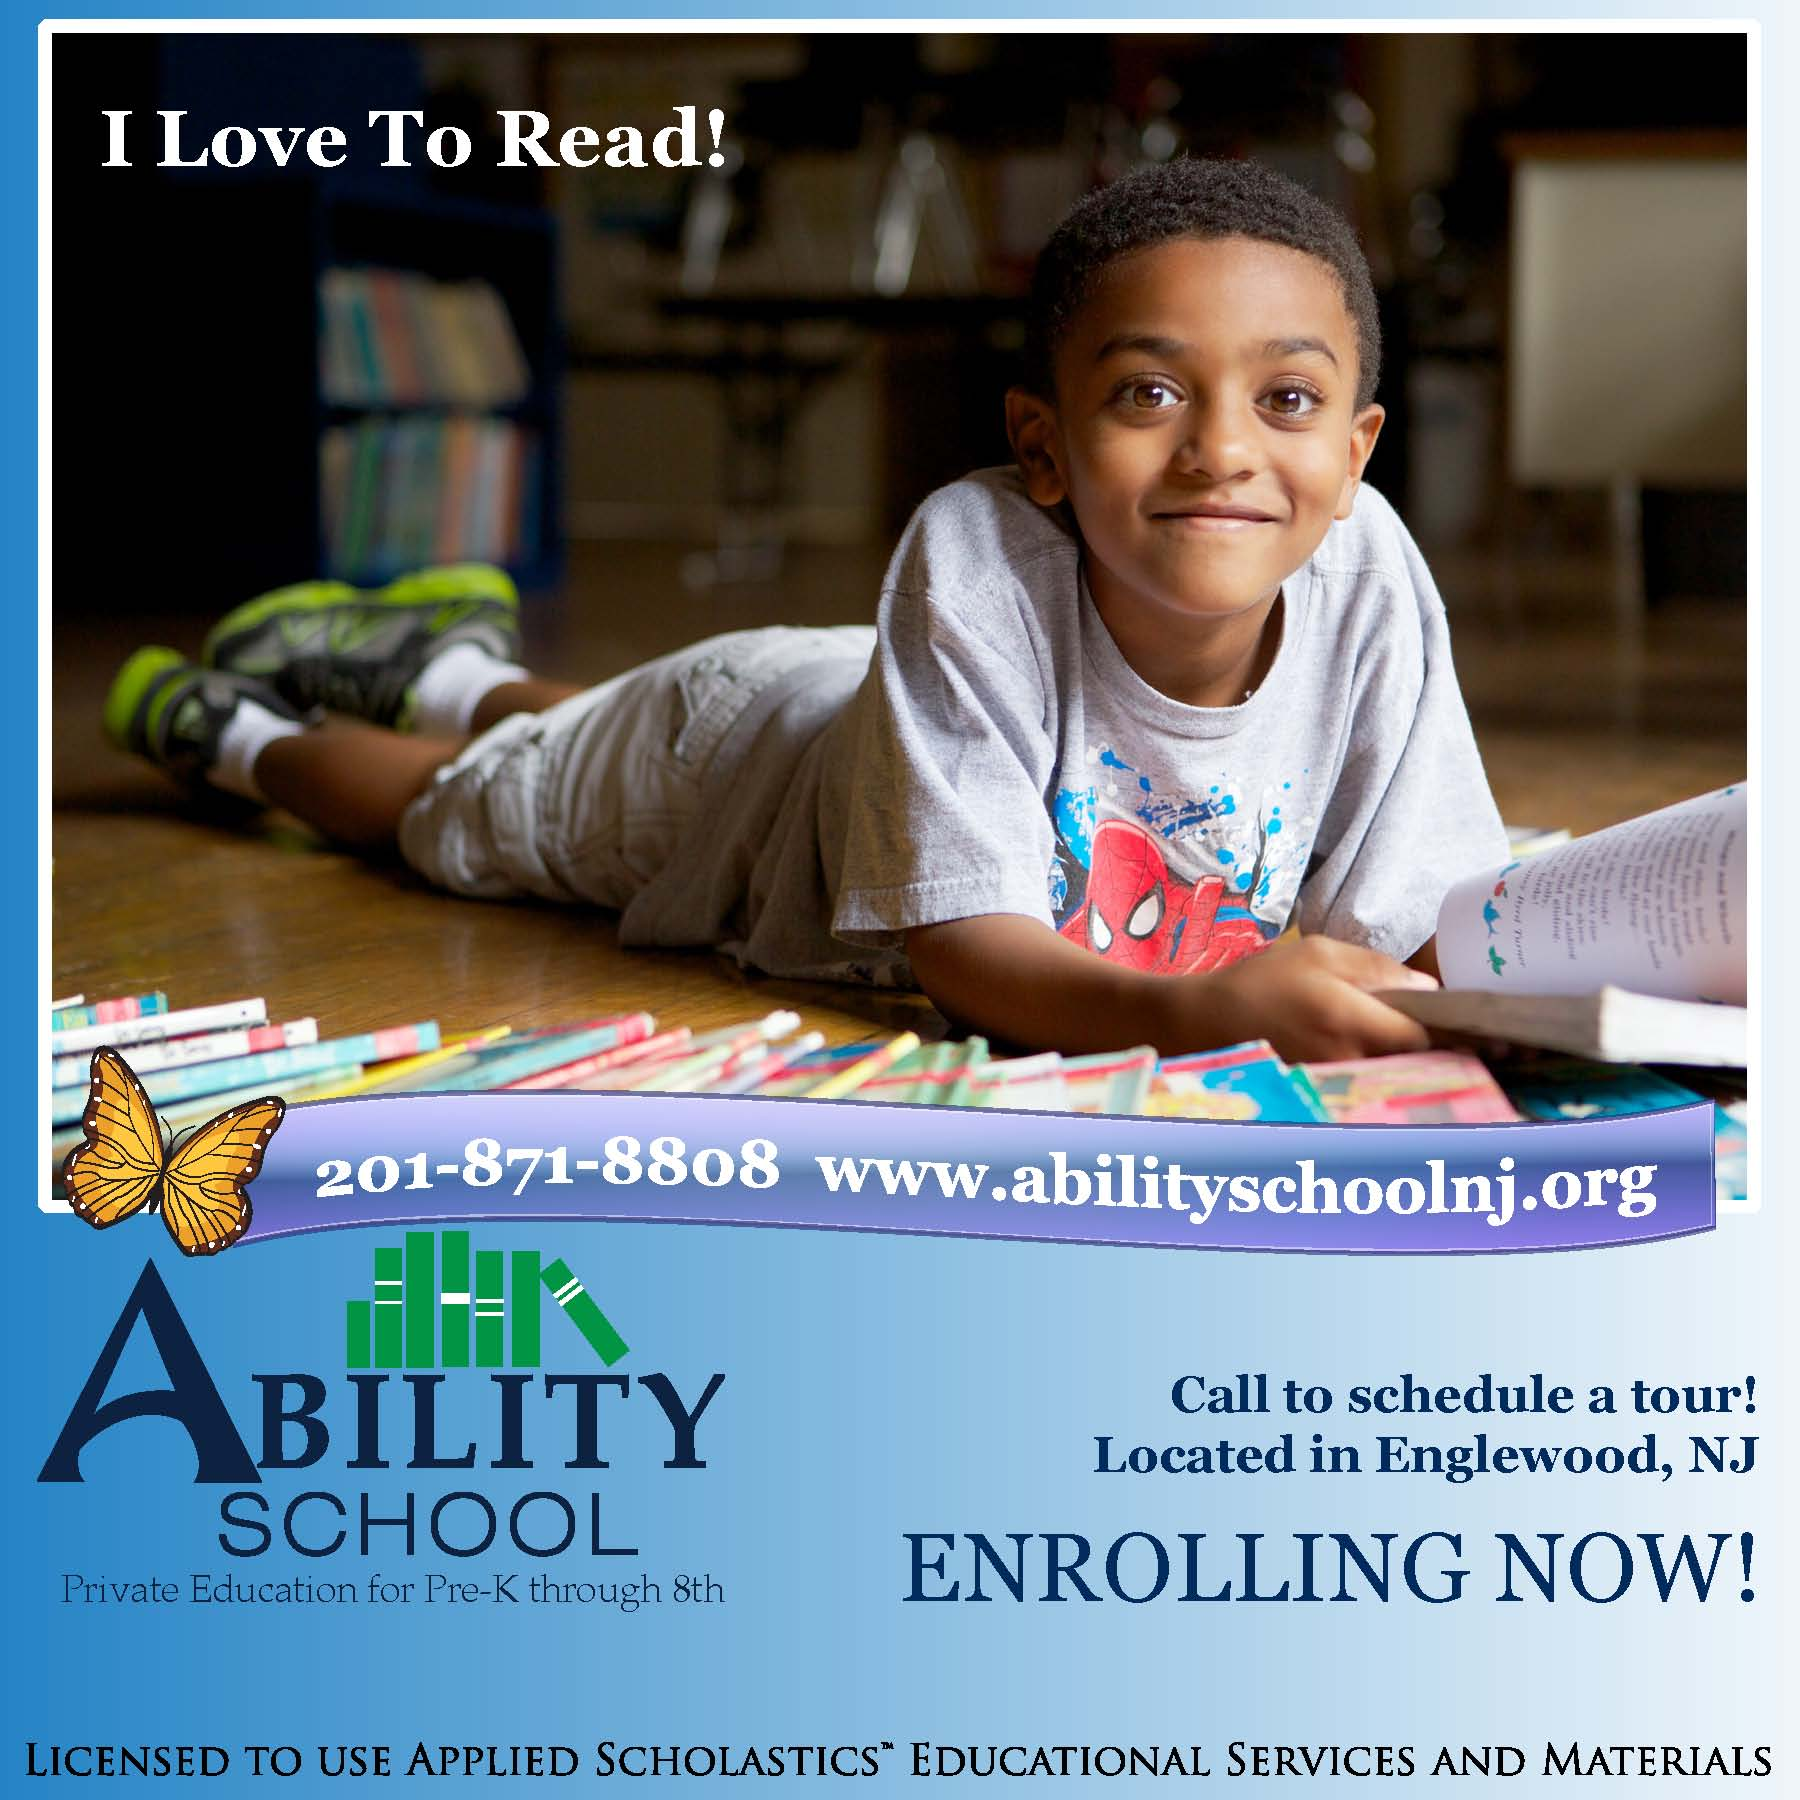 Ability School and Camp Open House